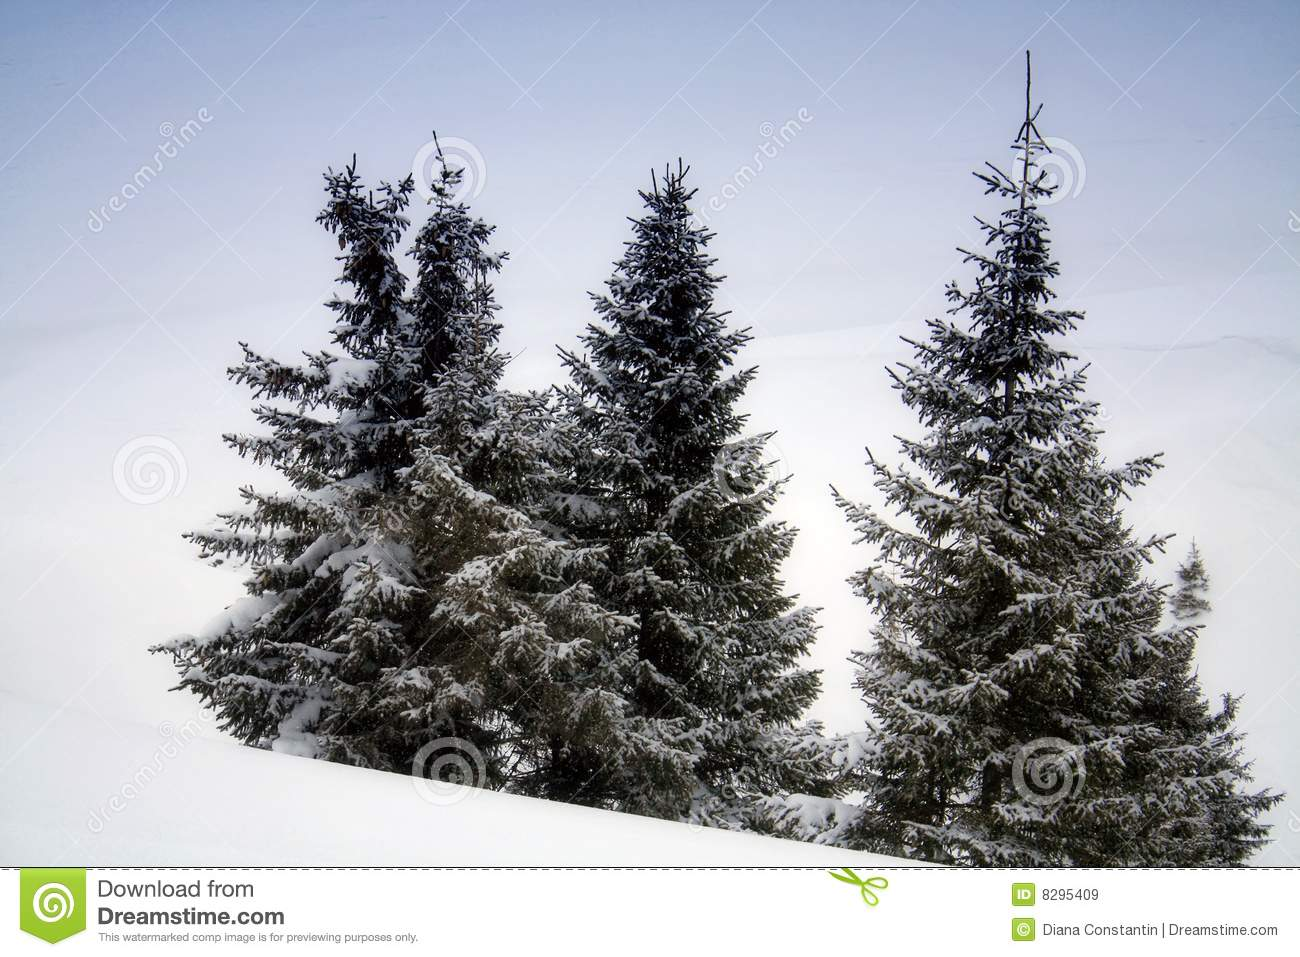 Pine trees in snow royalty free stock images image 8295409 - Images of pine trees in snow ...